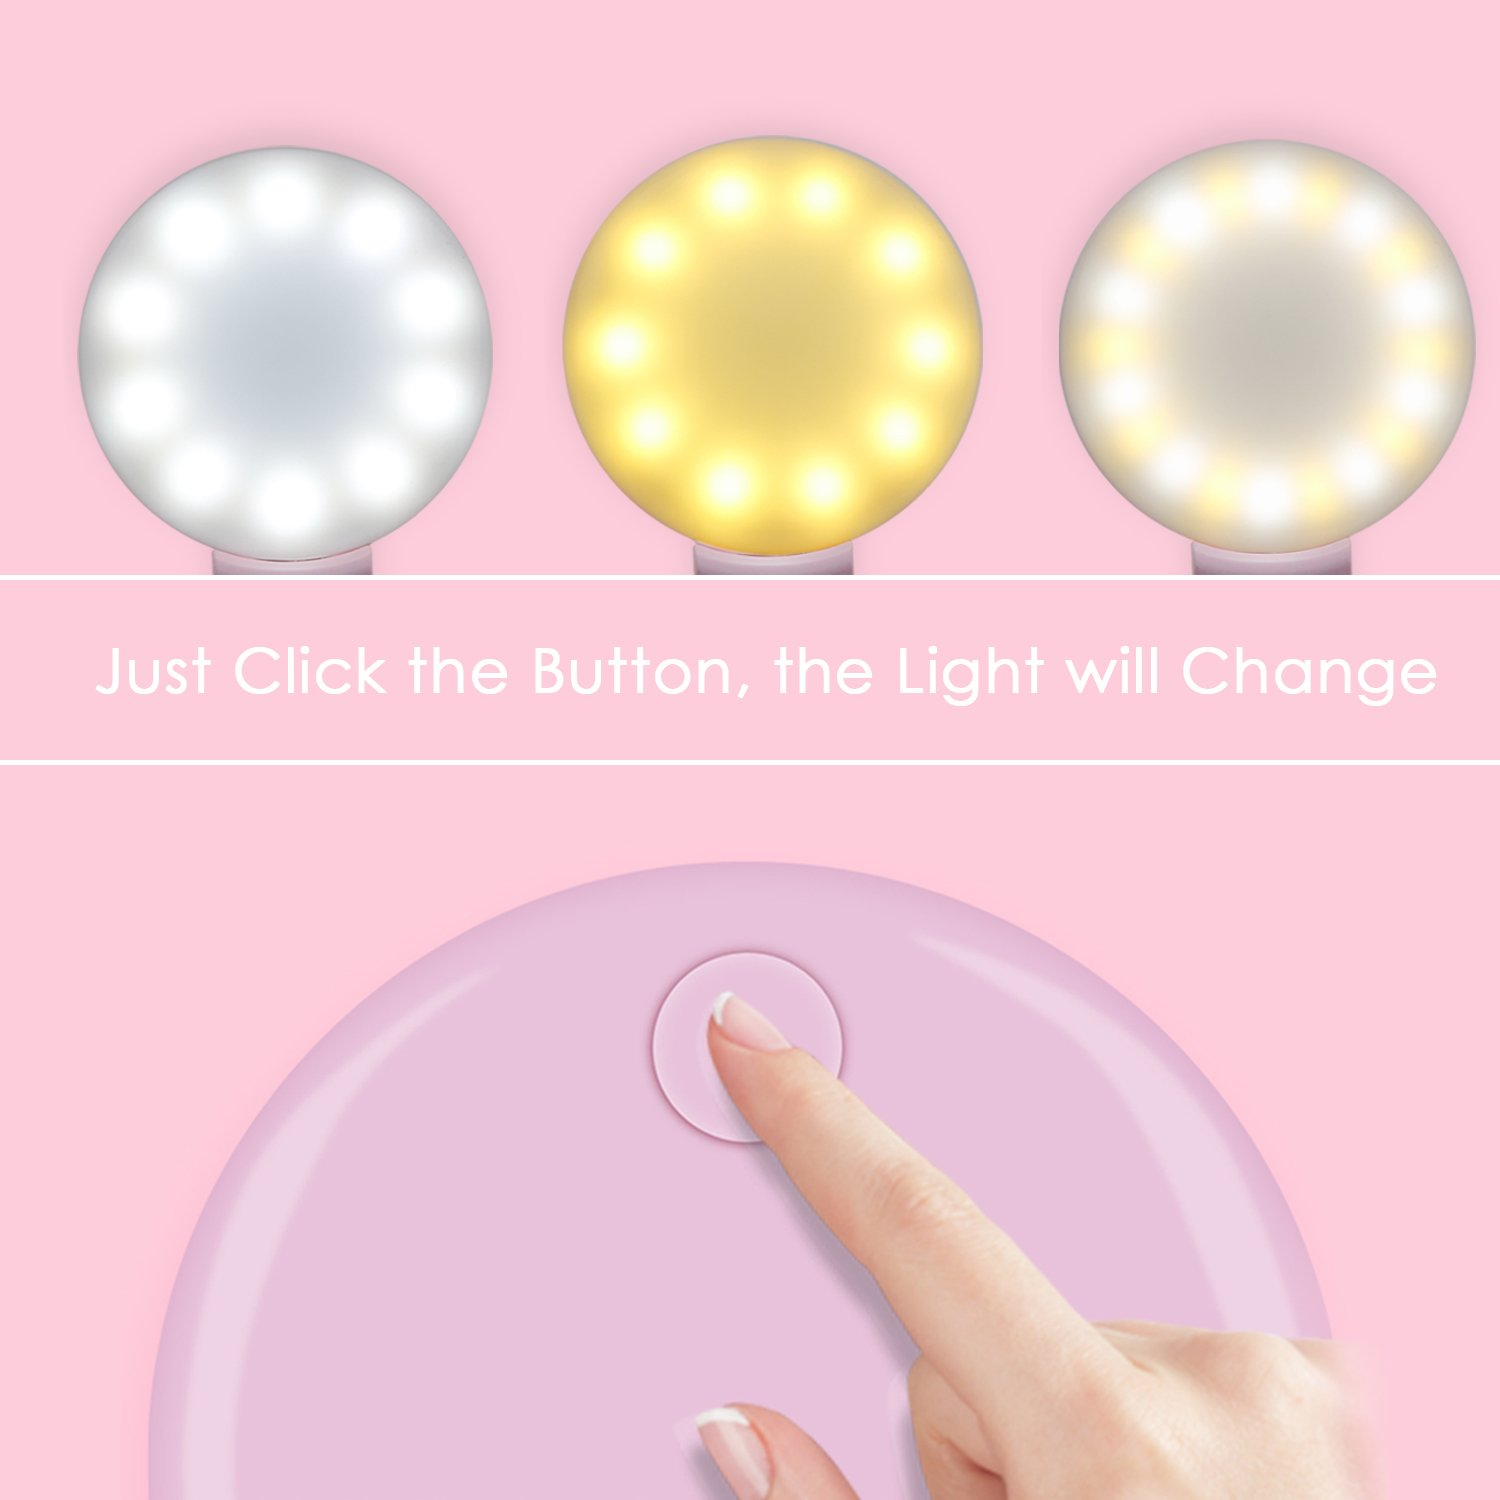 Selfie Ring Light, Clip-on Selfie Light with USB Charging Cable, Warm and Cold LEDs, for Smartphone Tablet Laptop-White (Pink)